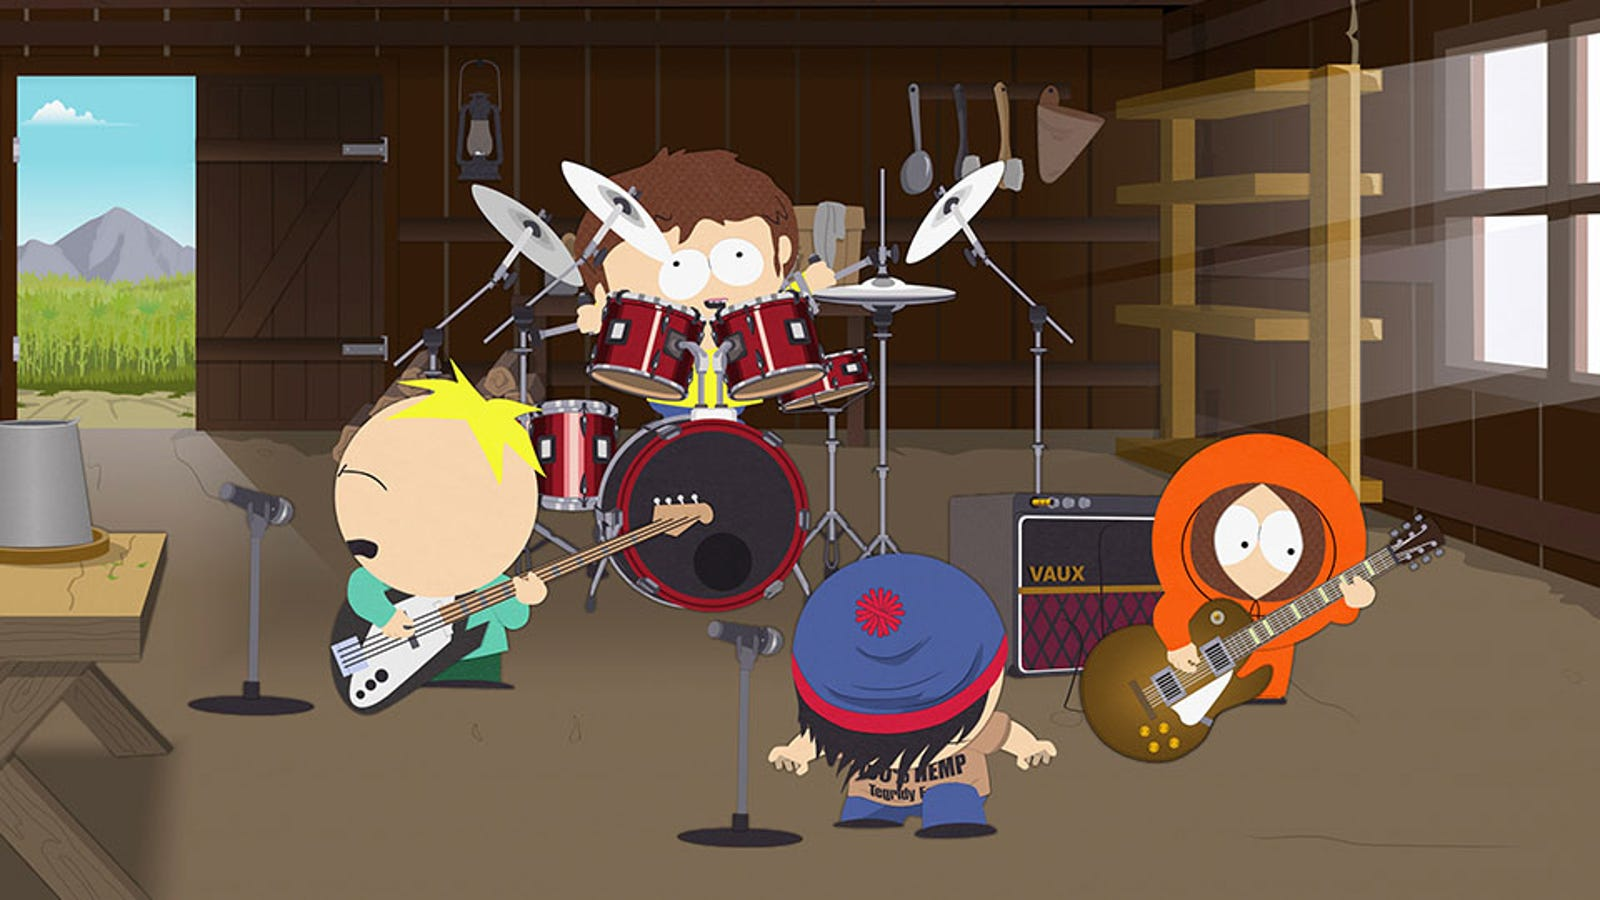 South Park takes some hard shots at China as Randy grows his weed business